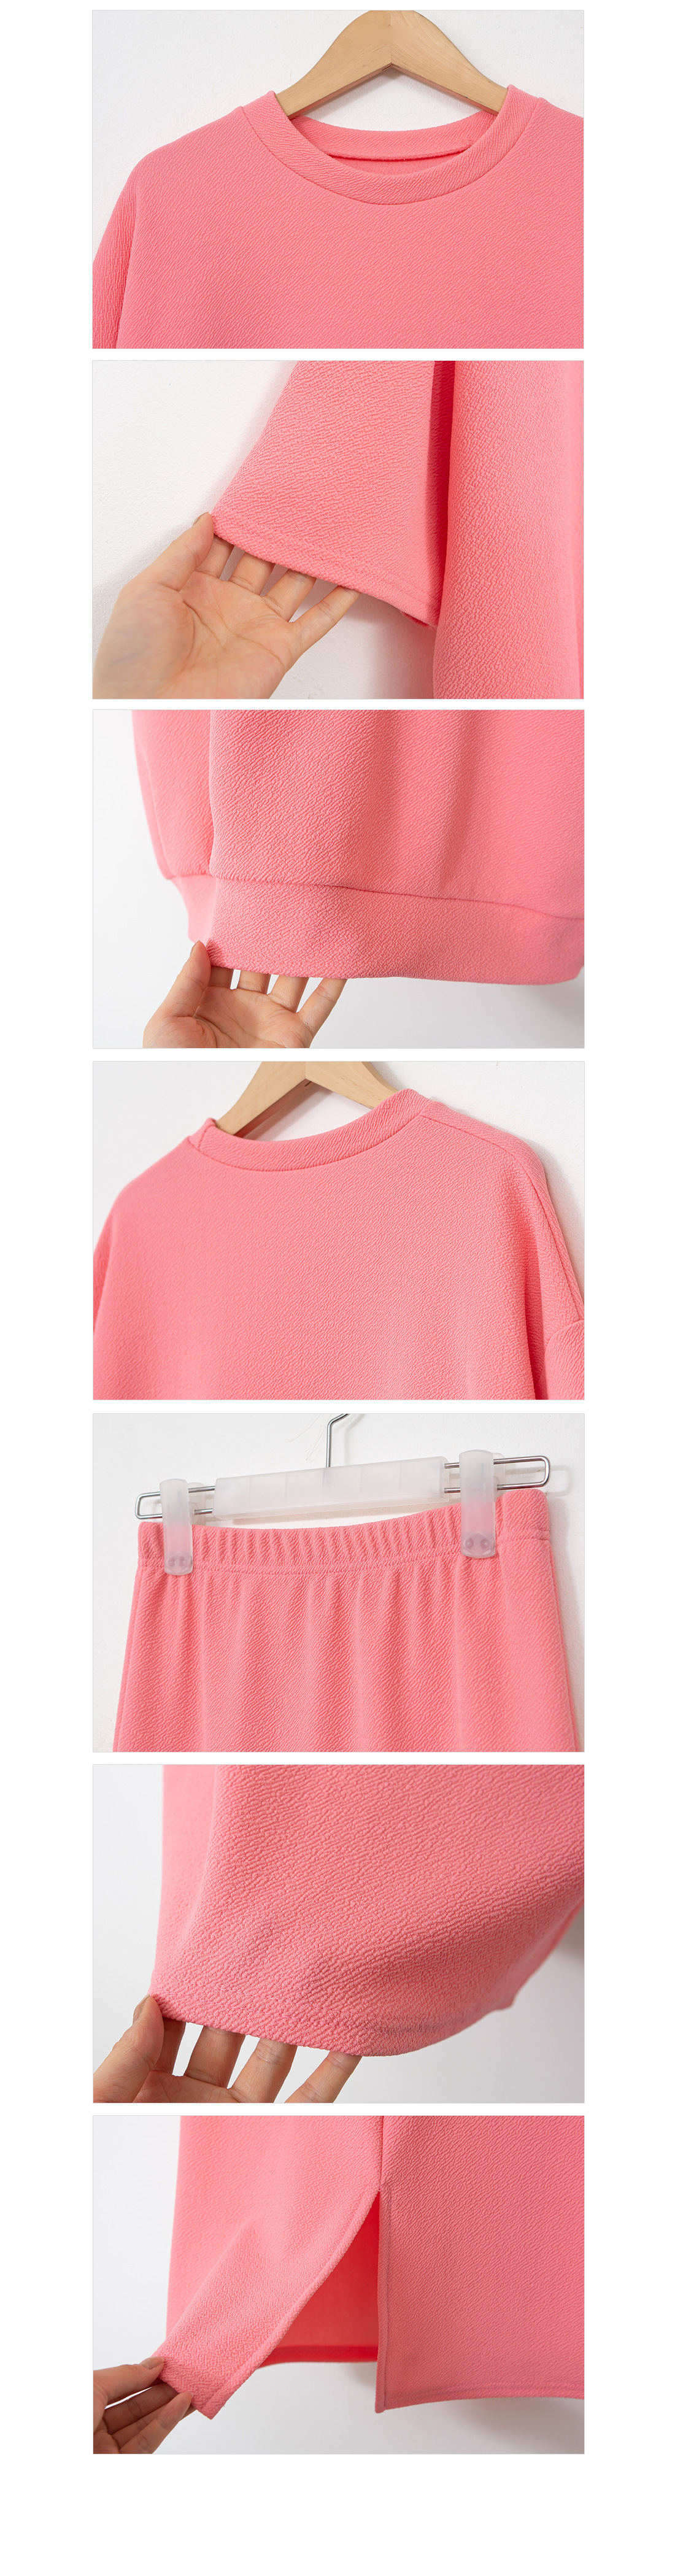 Wrinkle-free comfortable daily skirt set #92521F available for purchase